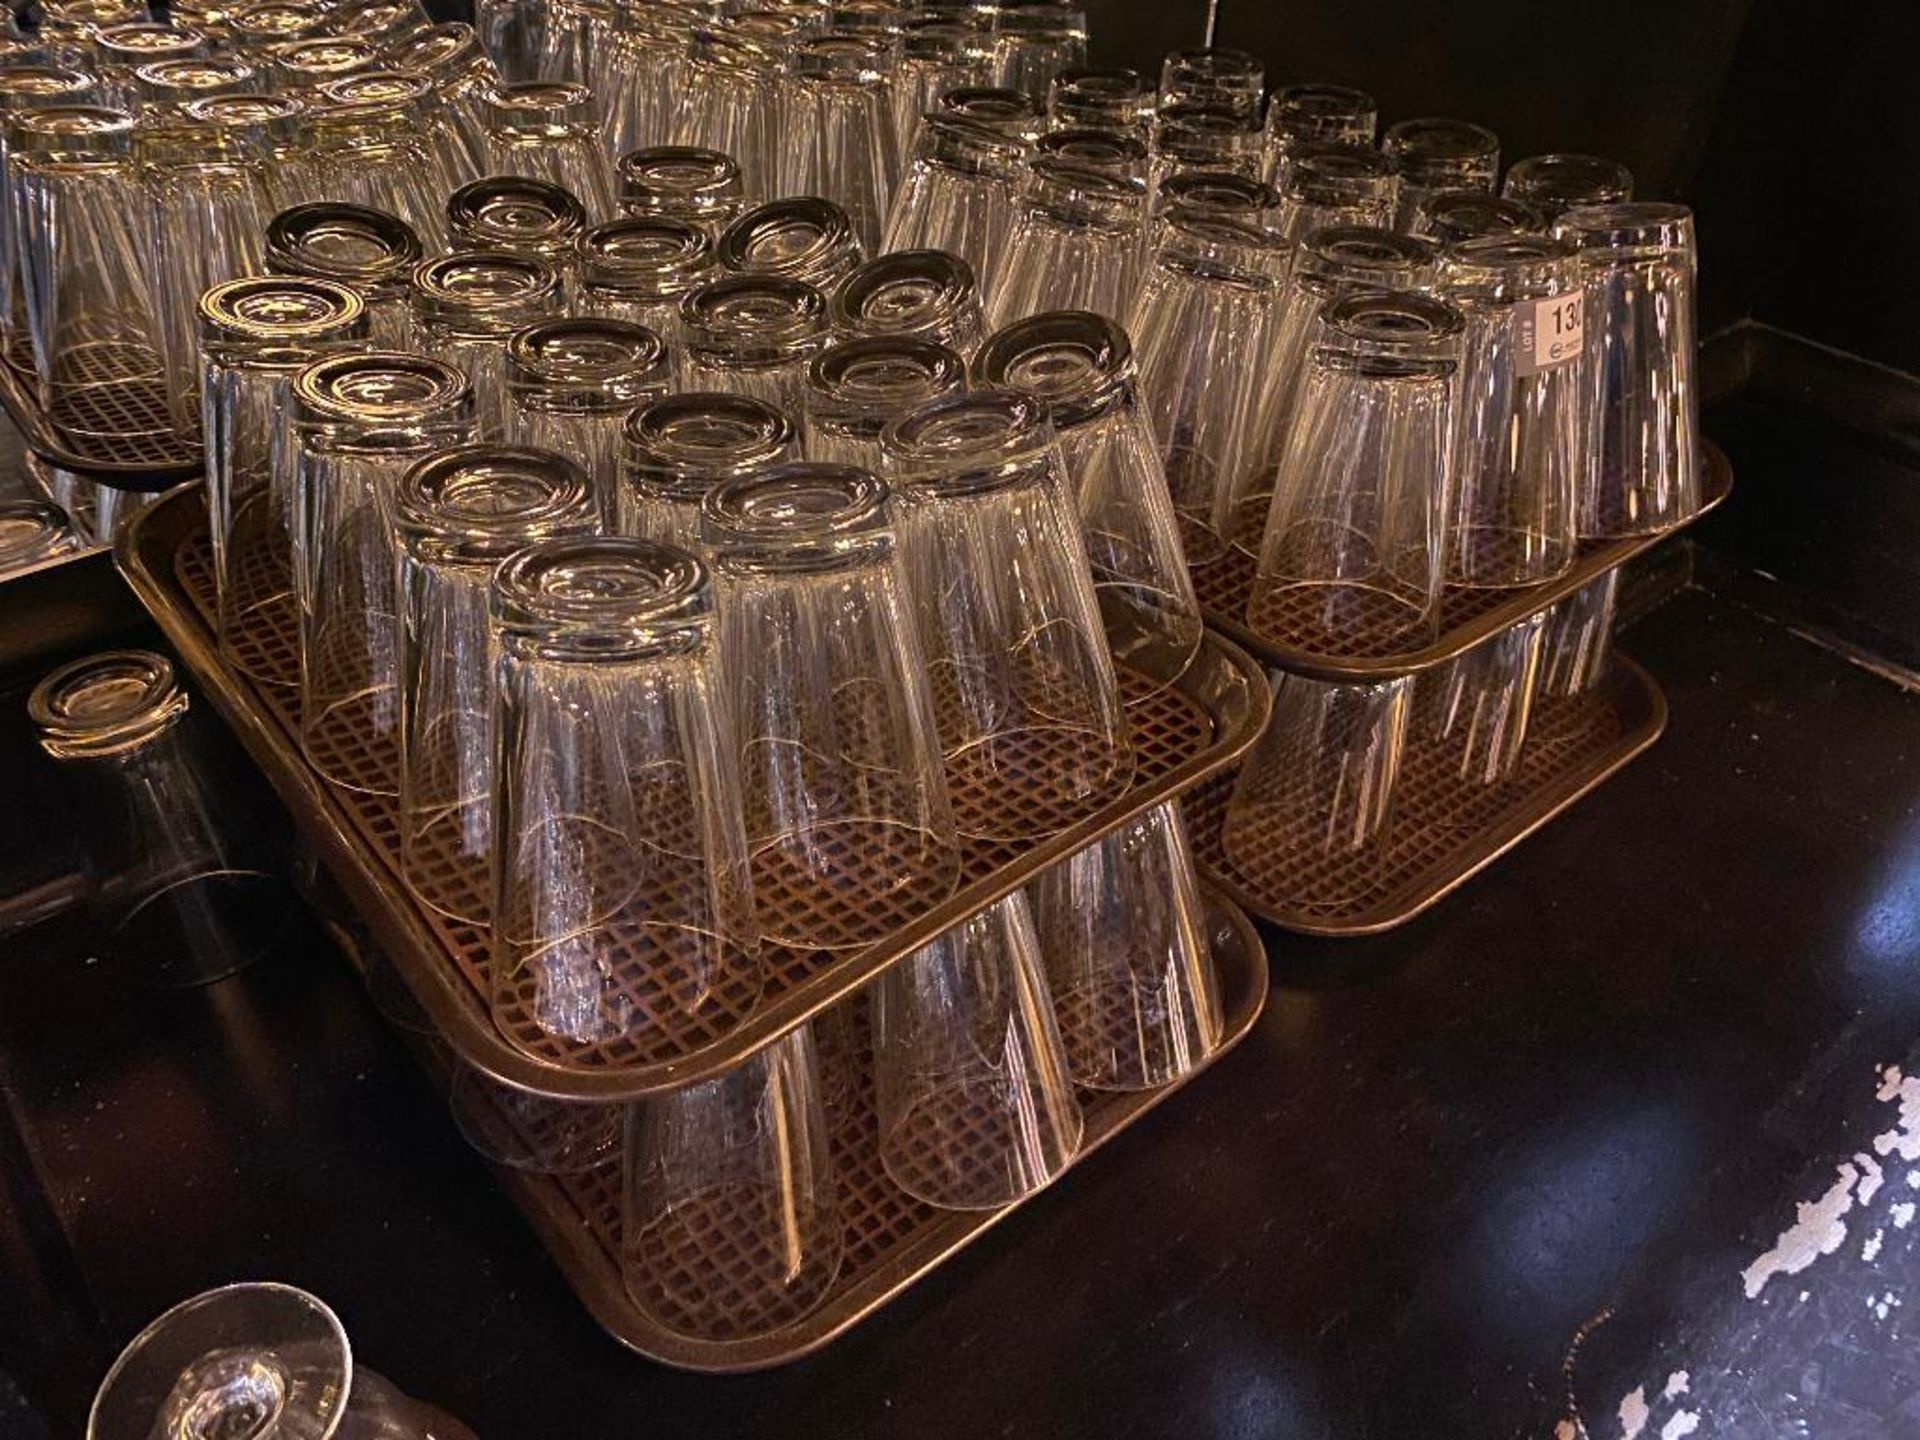 LOT OF (4) TRAYS OF WATER GLASSES - Image 2 of 4